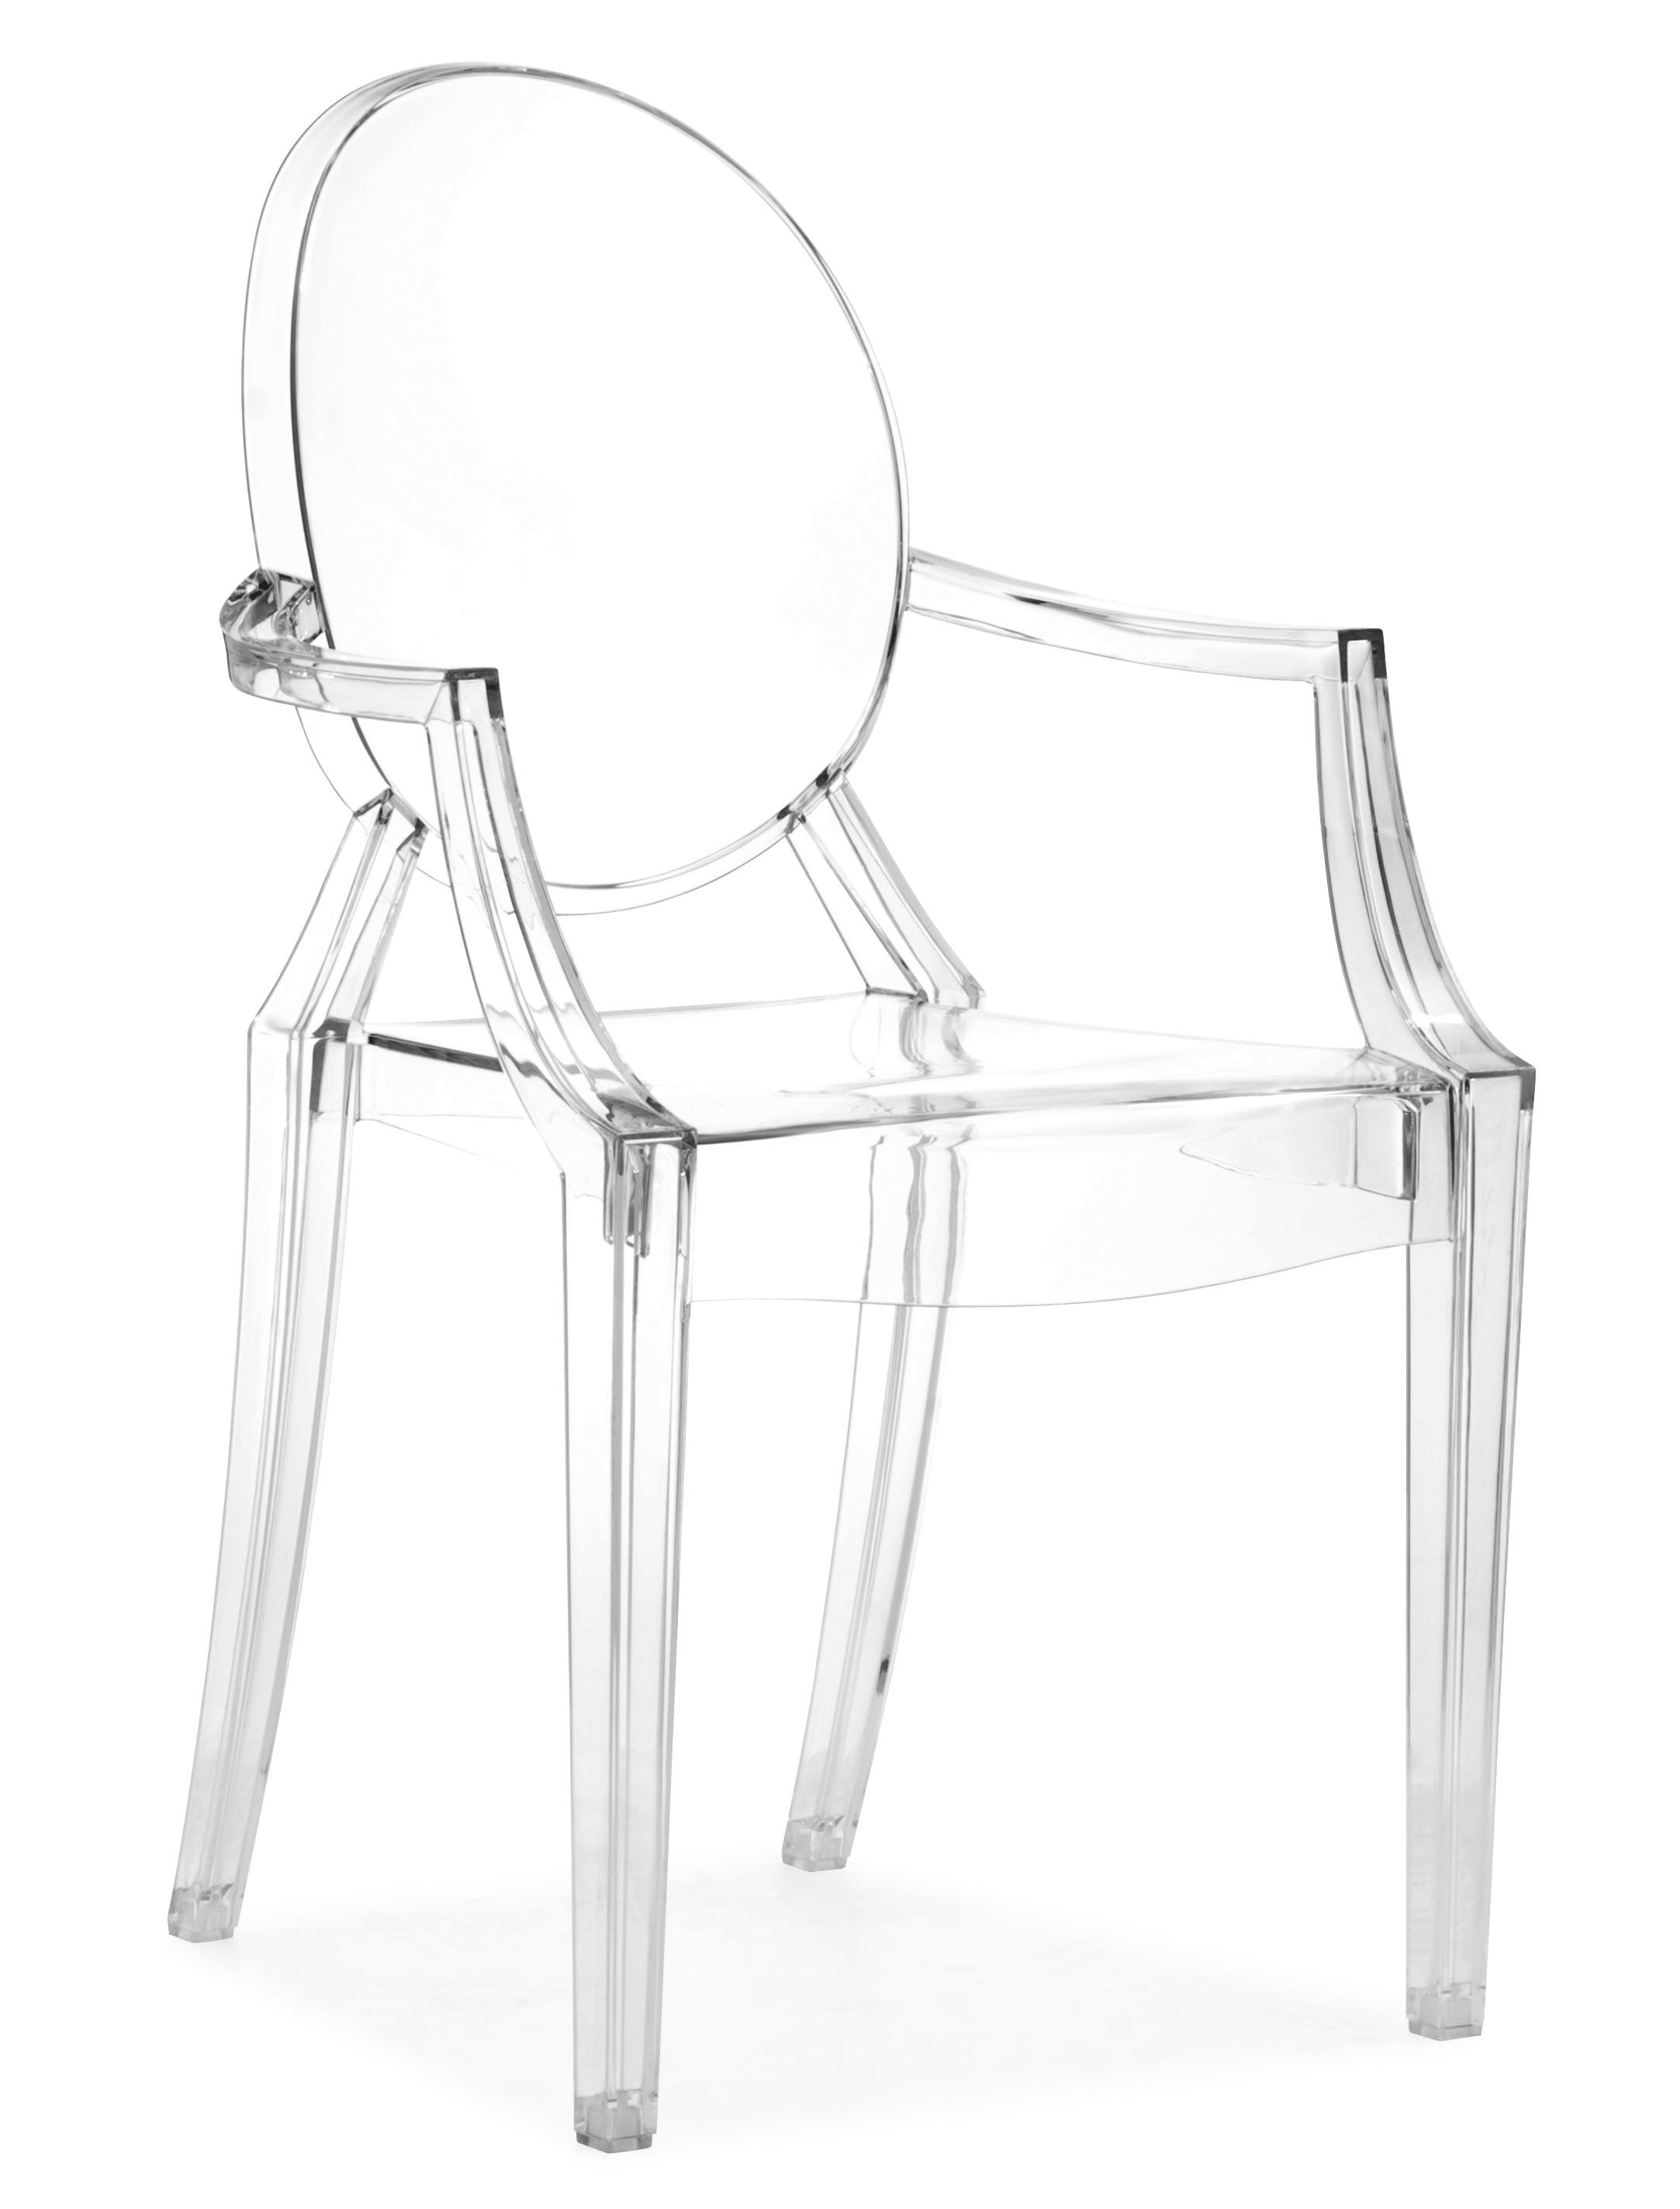 Acrylic clear chairs - A Classic Ghost Chair Works In Modern And Contrasts Nicely In Rustic